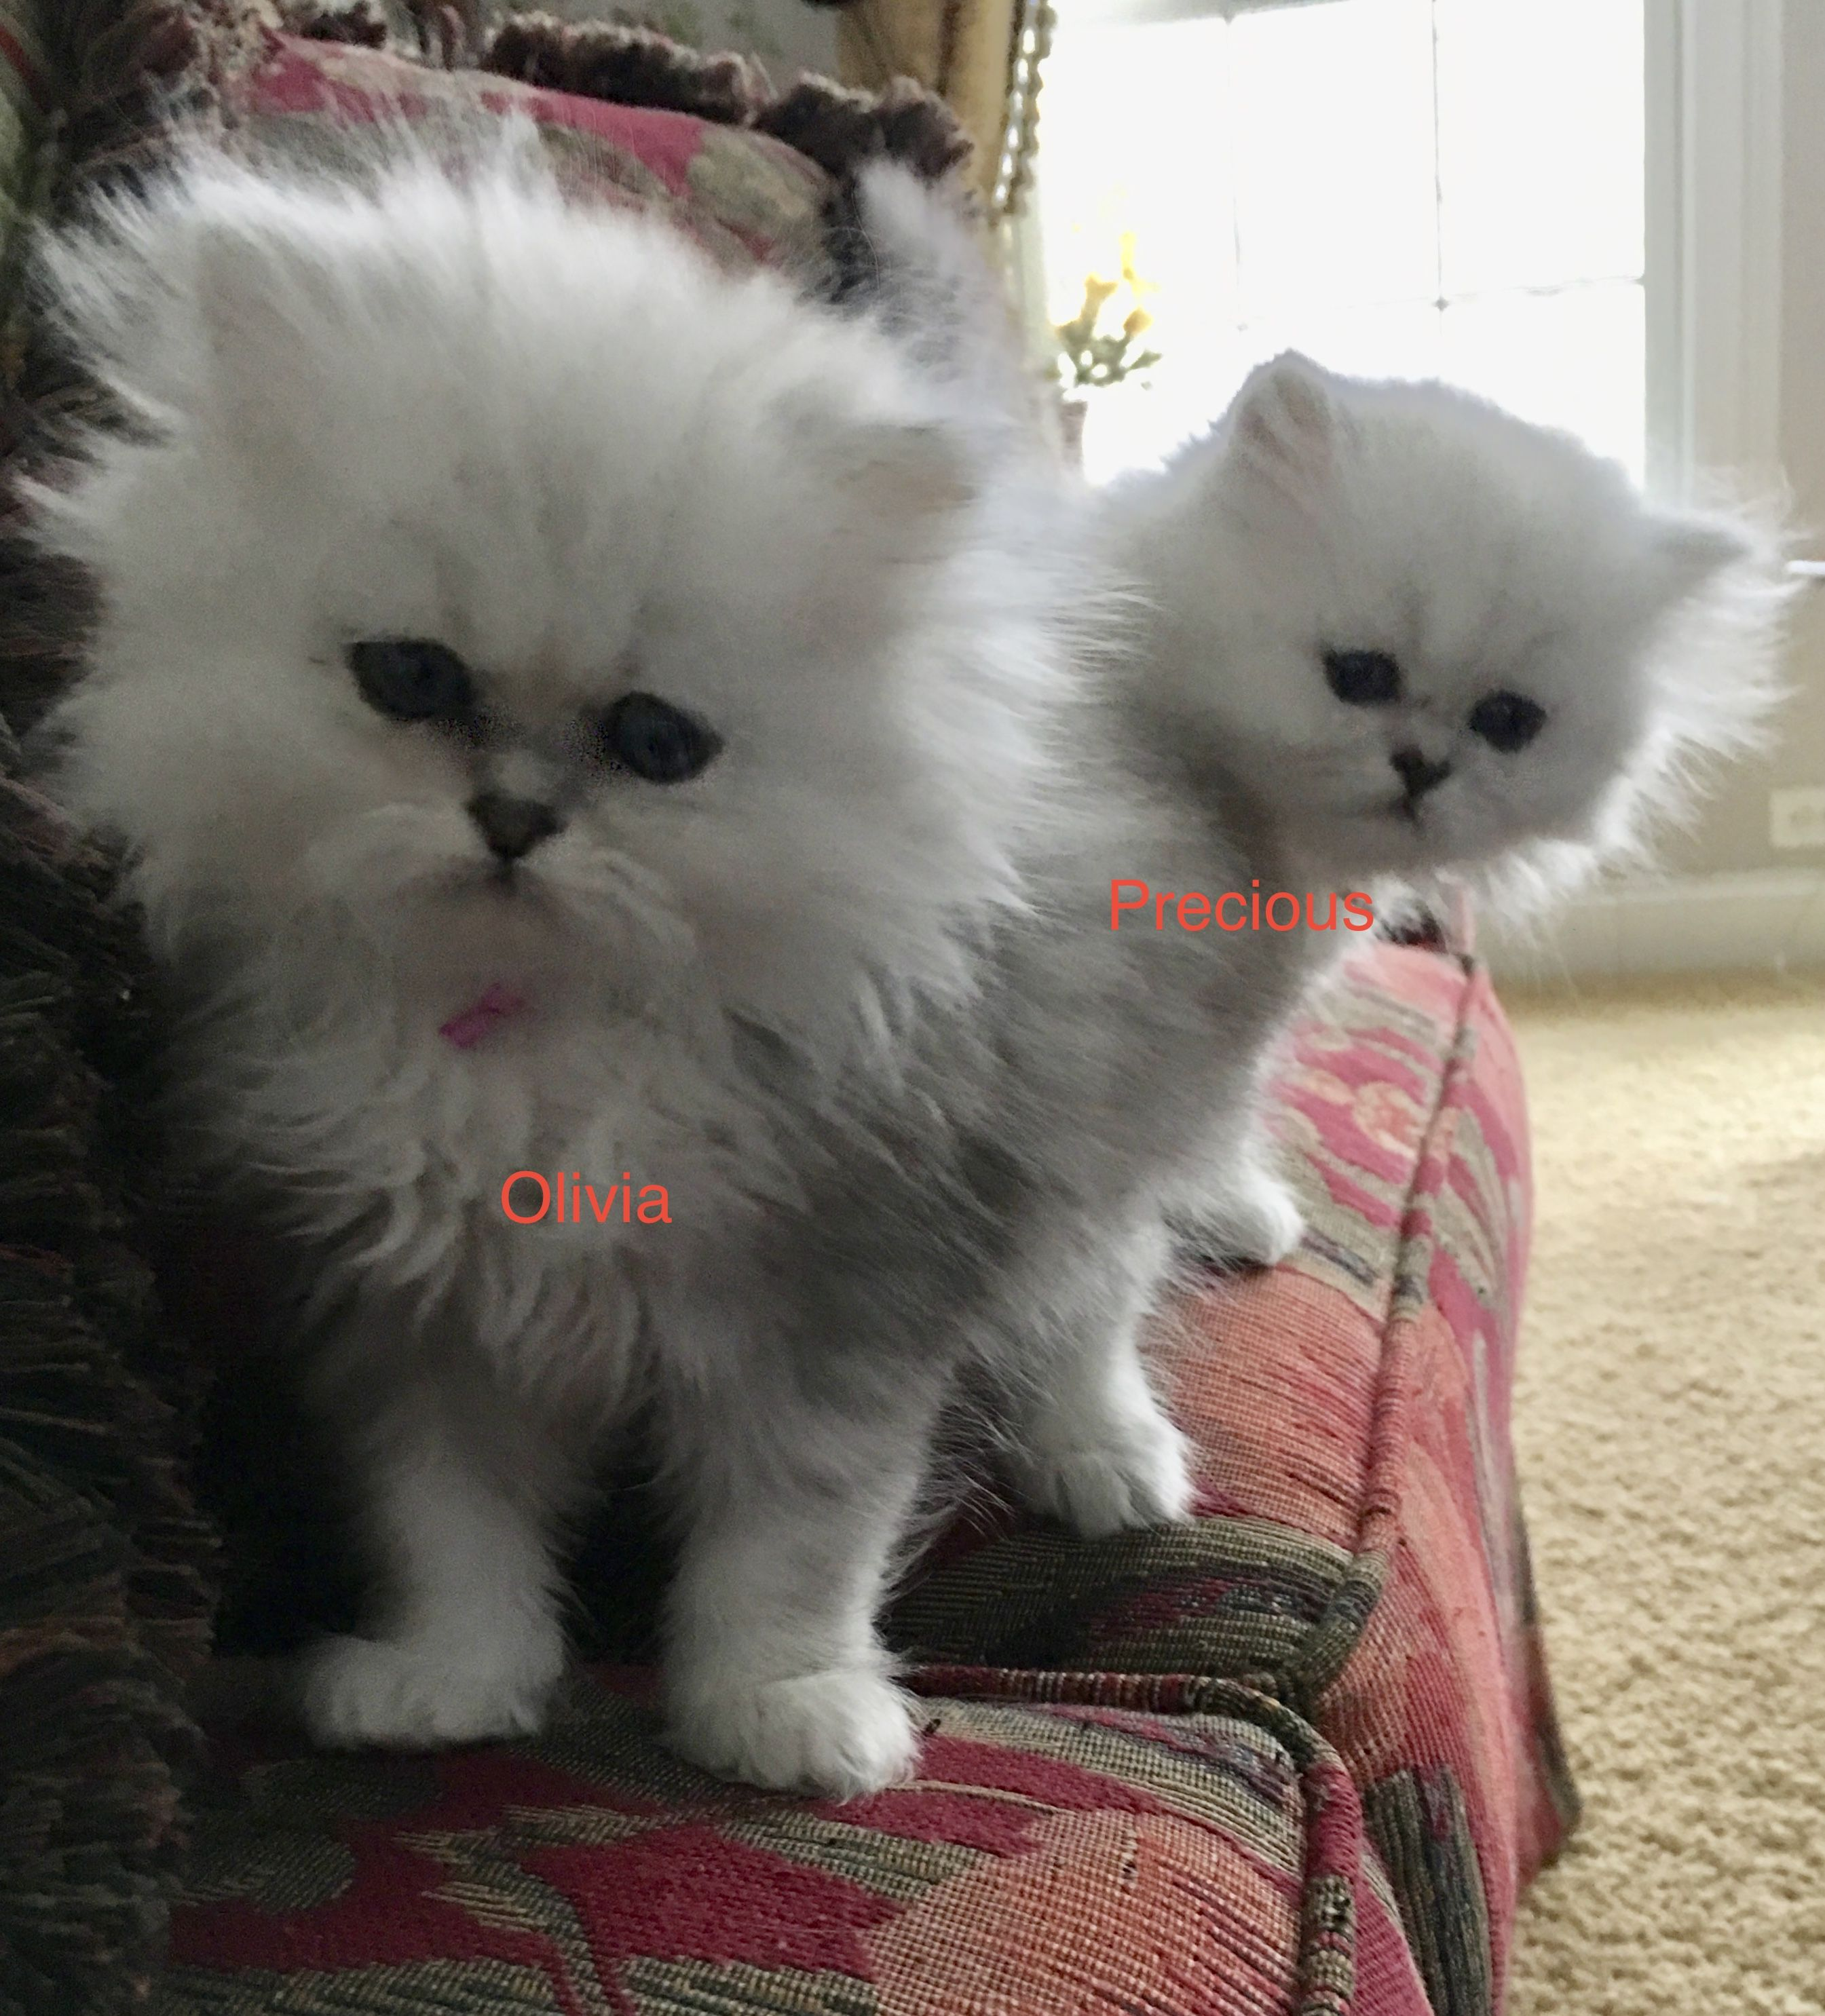 Looking for our new mommy. readytosnuggle friendlykitty